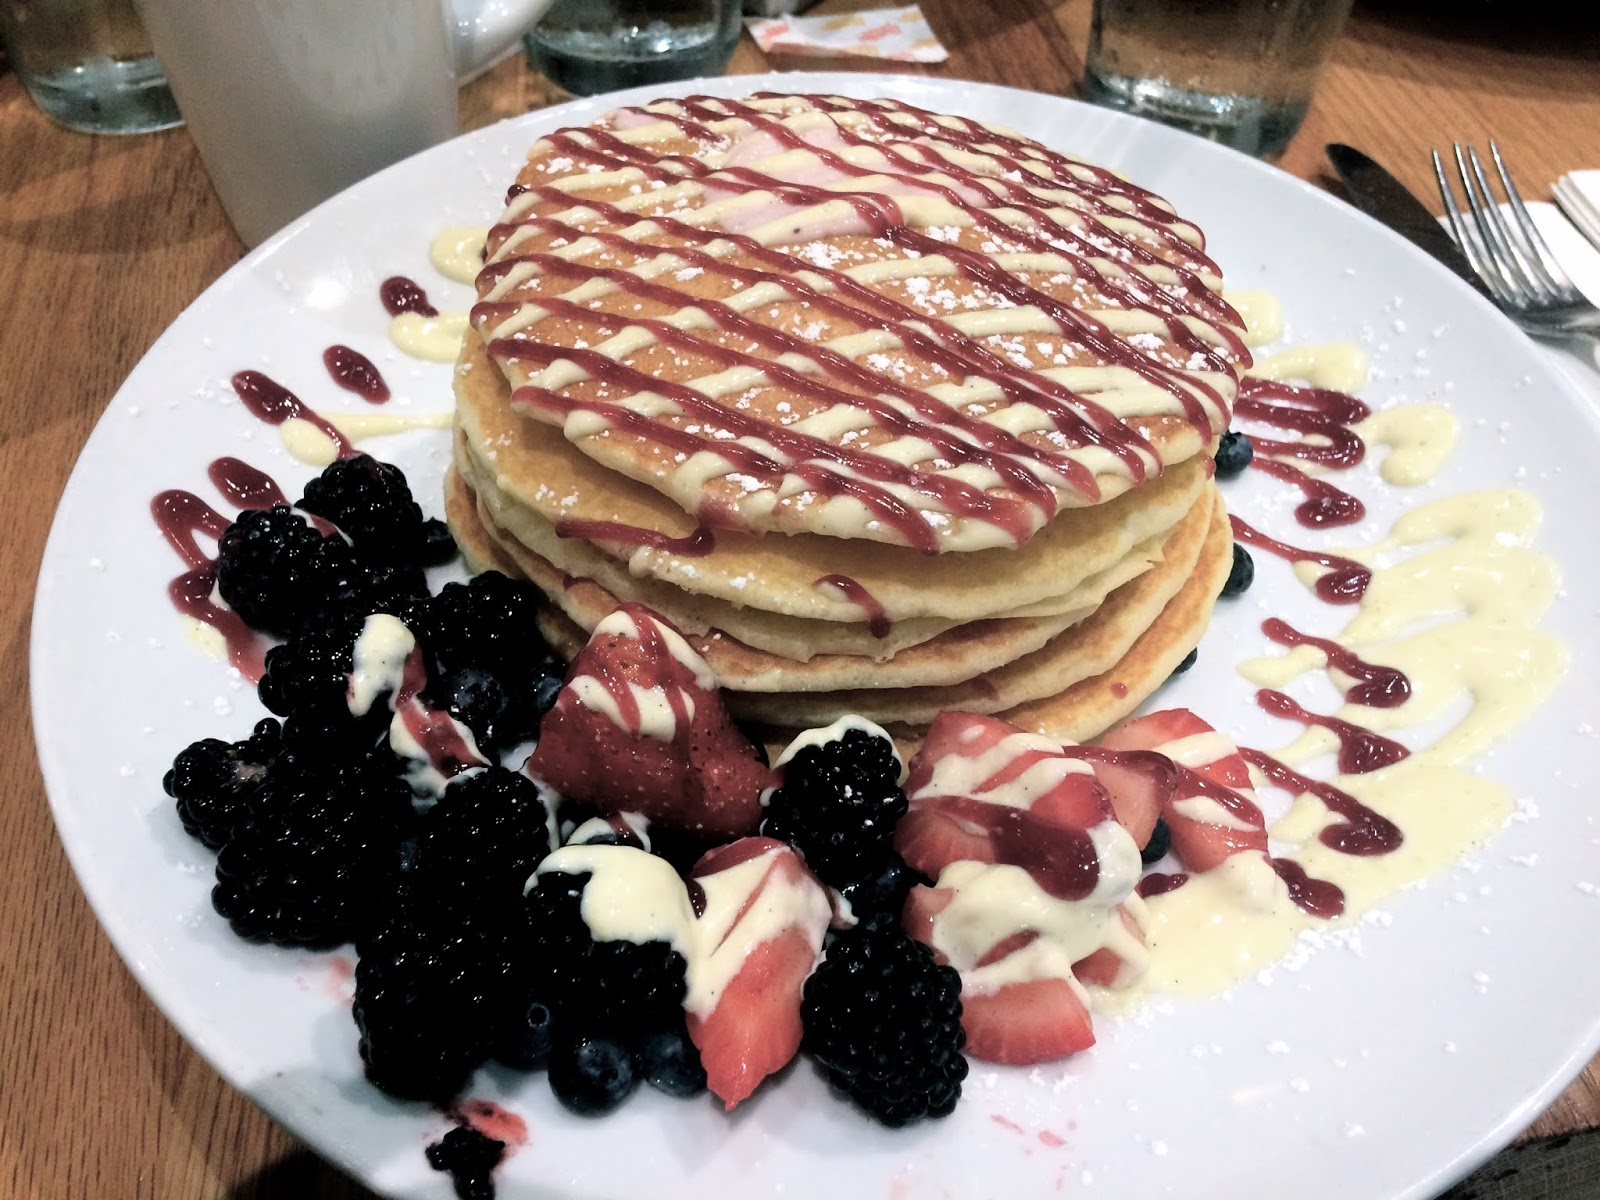 Pancakes covered in compote, strawberry cream and berries